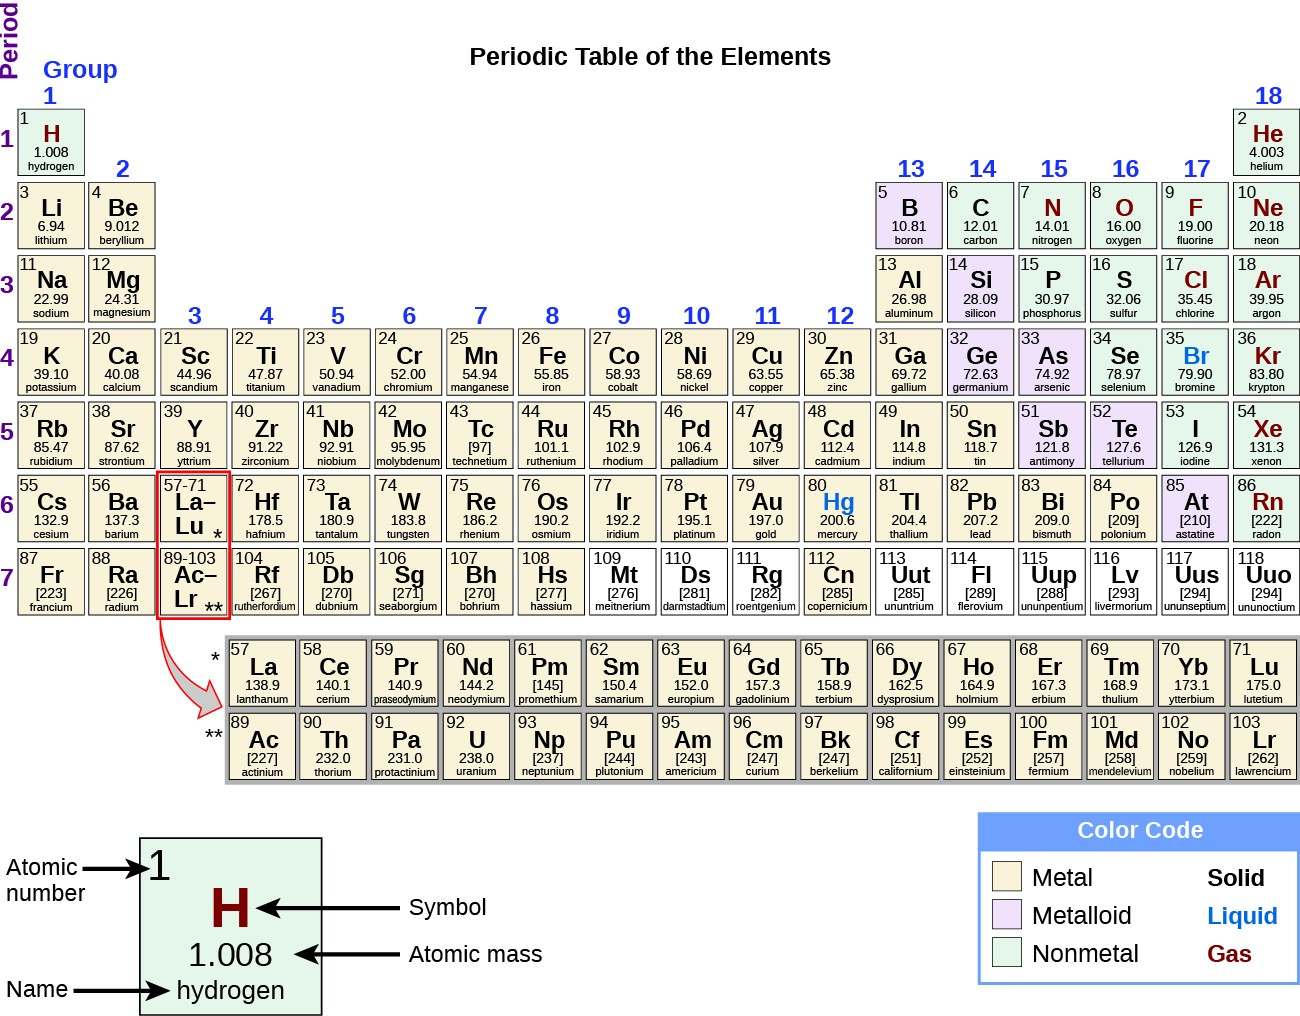 the periodic table of elements is shown the 18 columns are labeled group